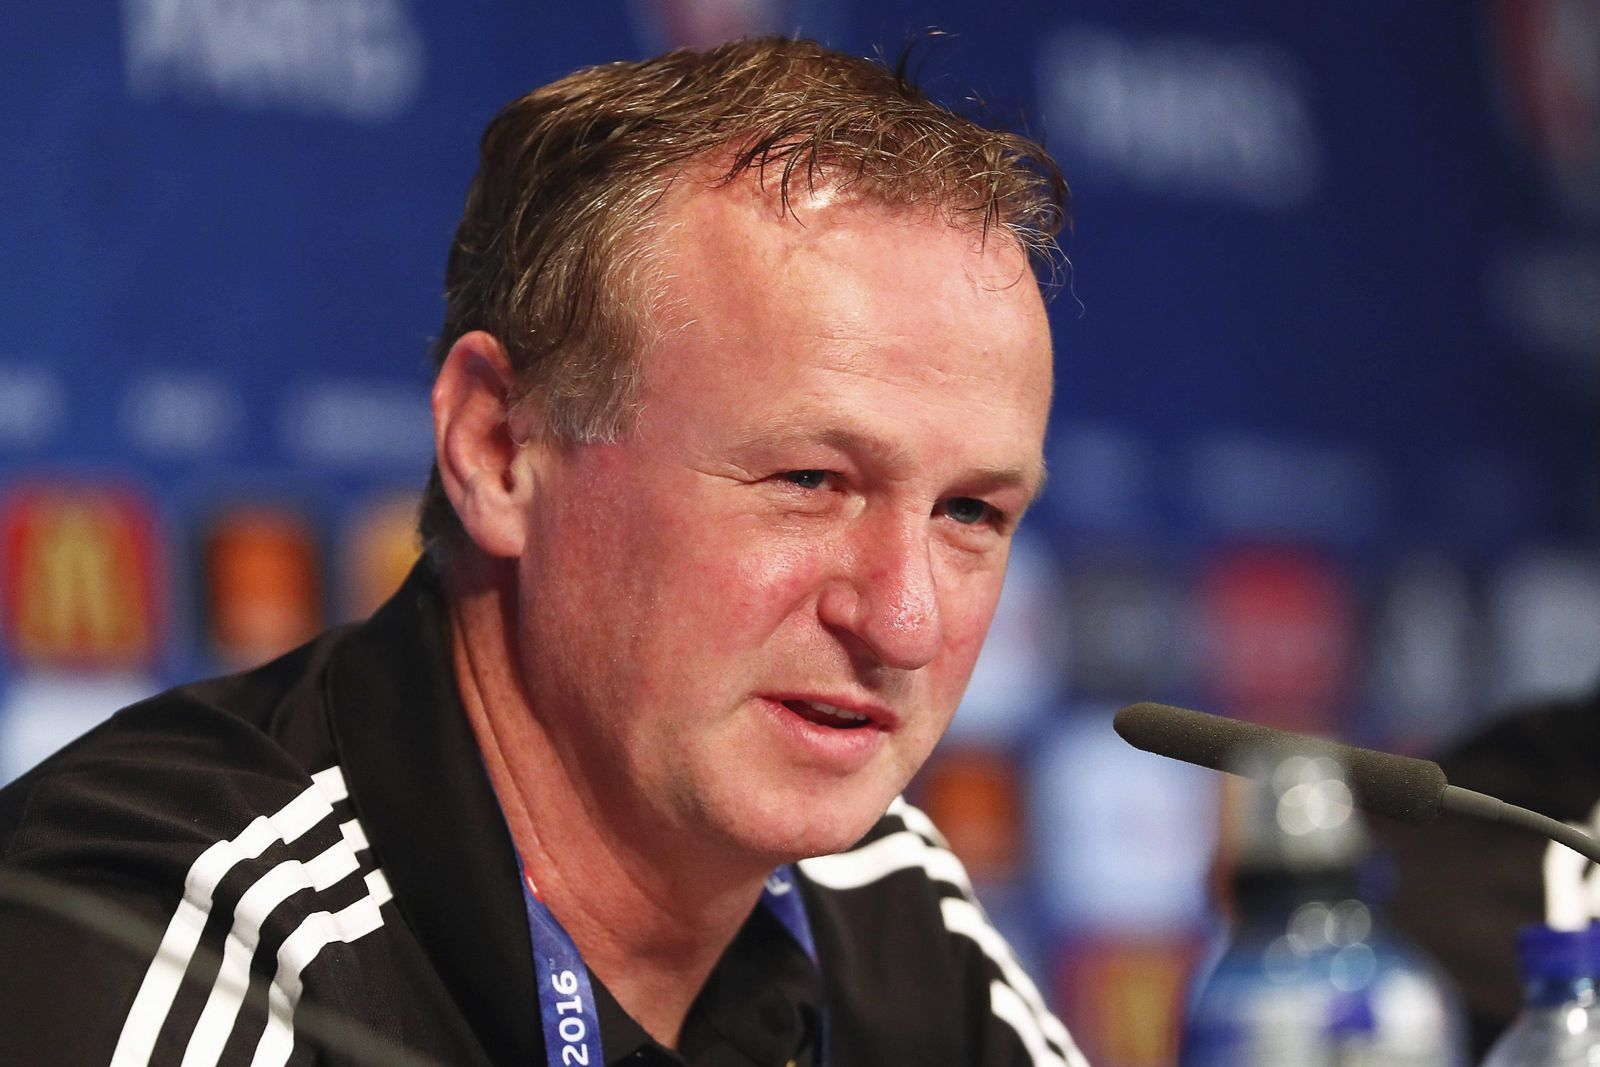 EURO 2016 - Northern Ireland press conference michael oneill